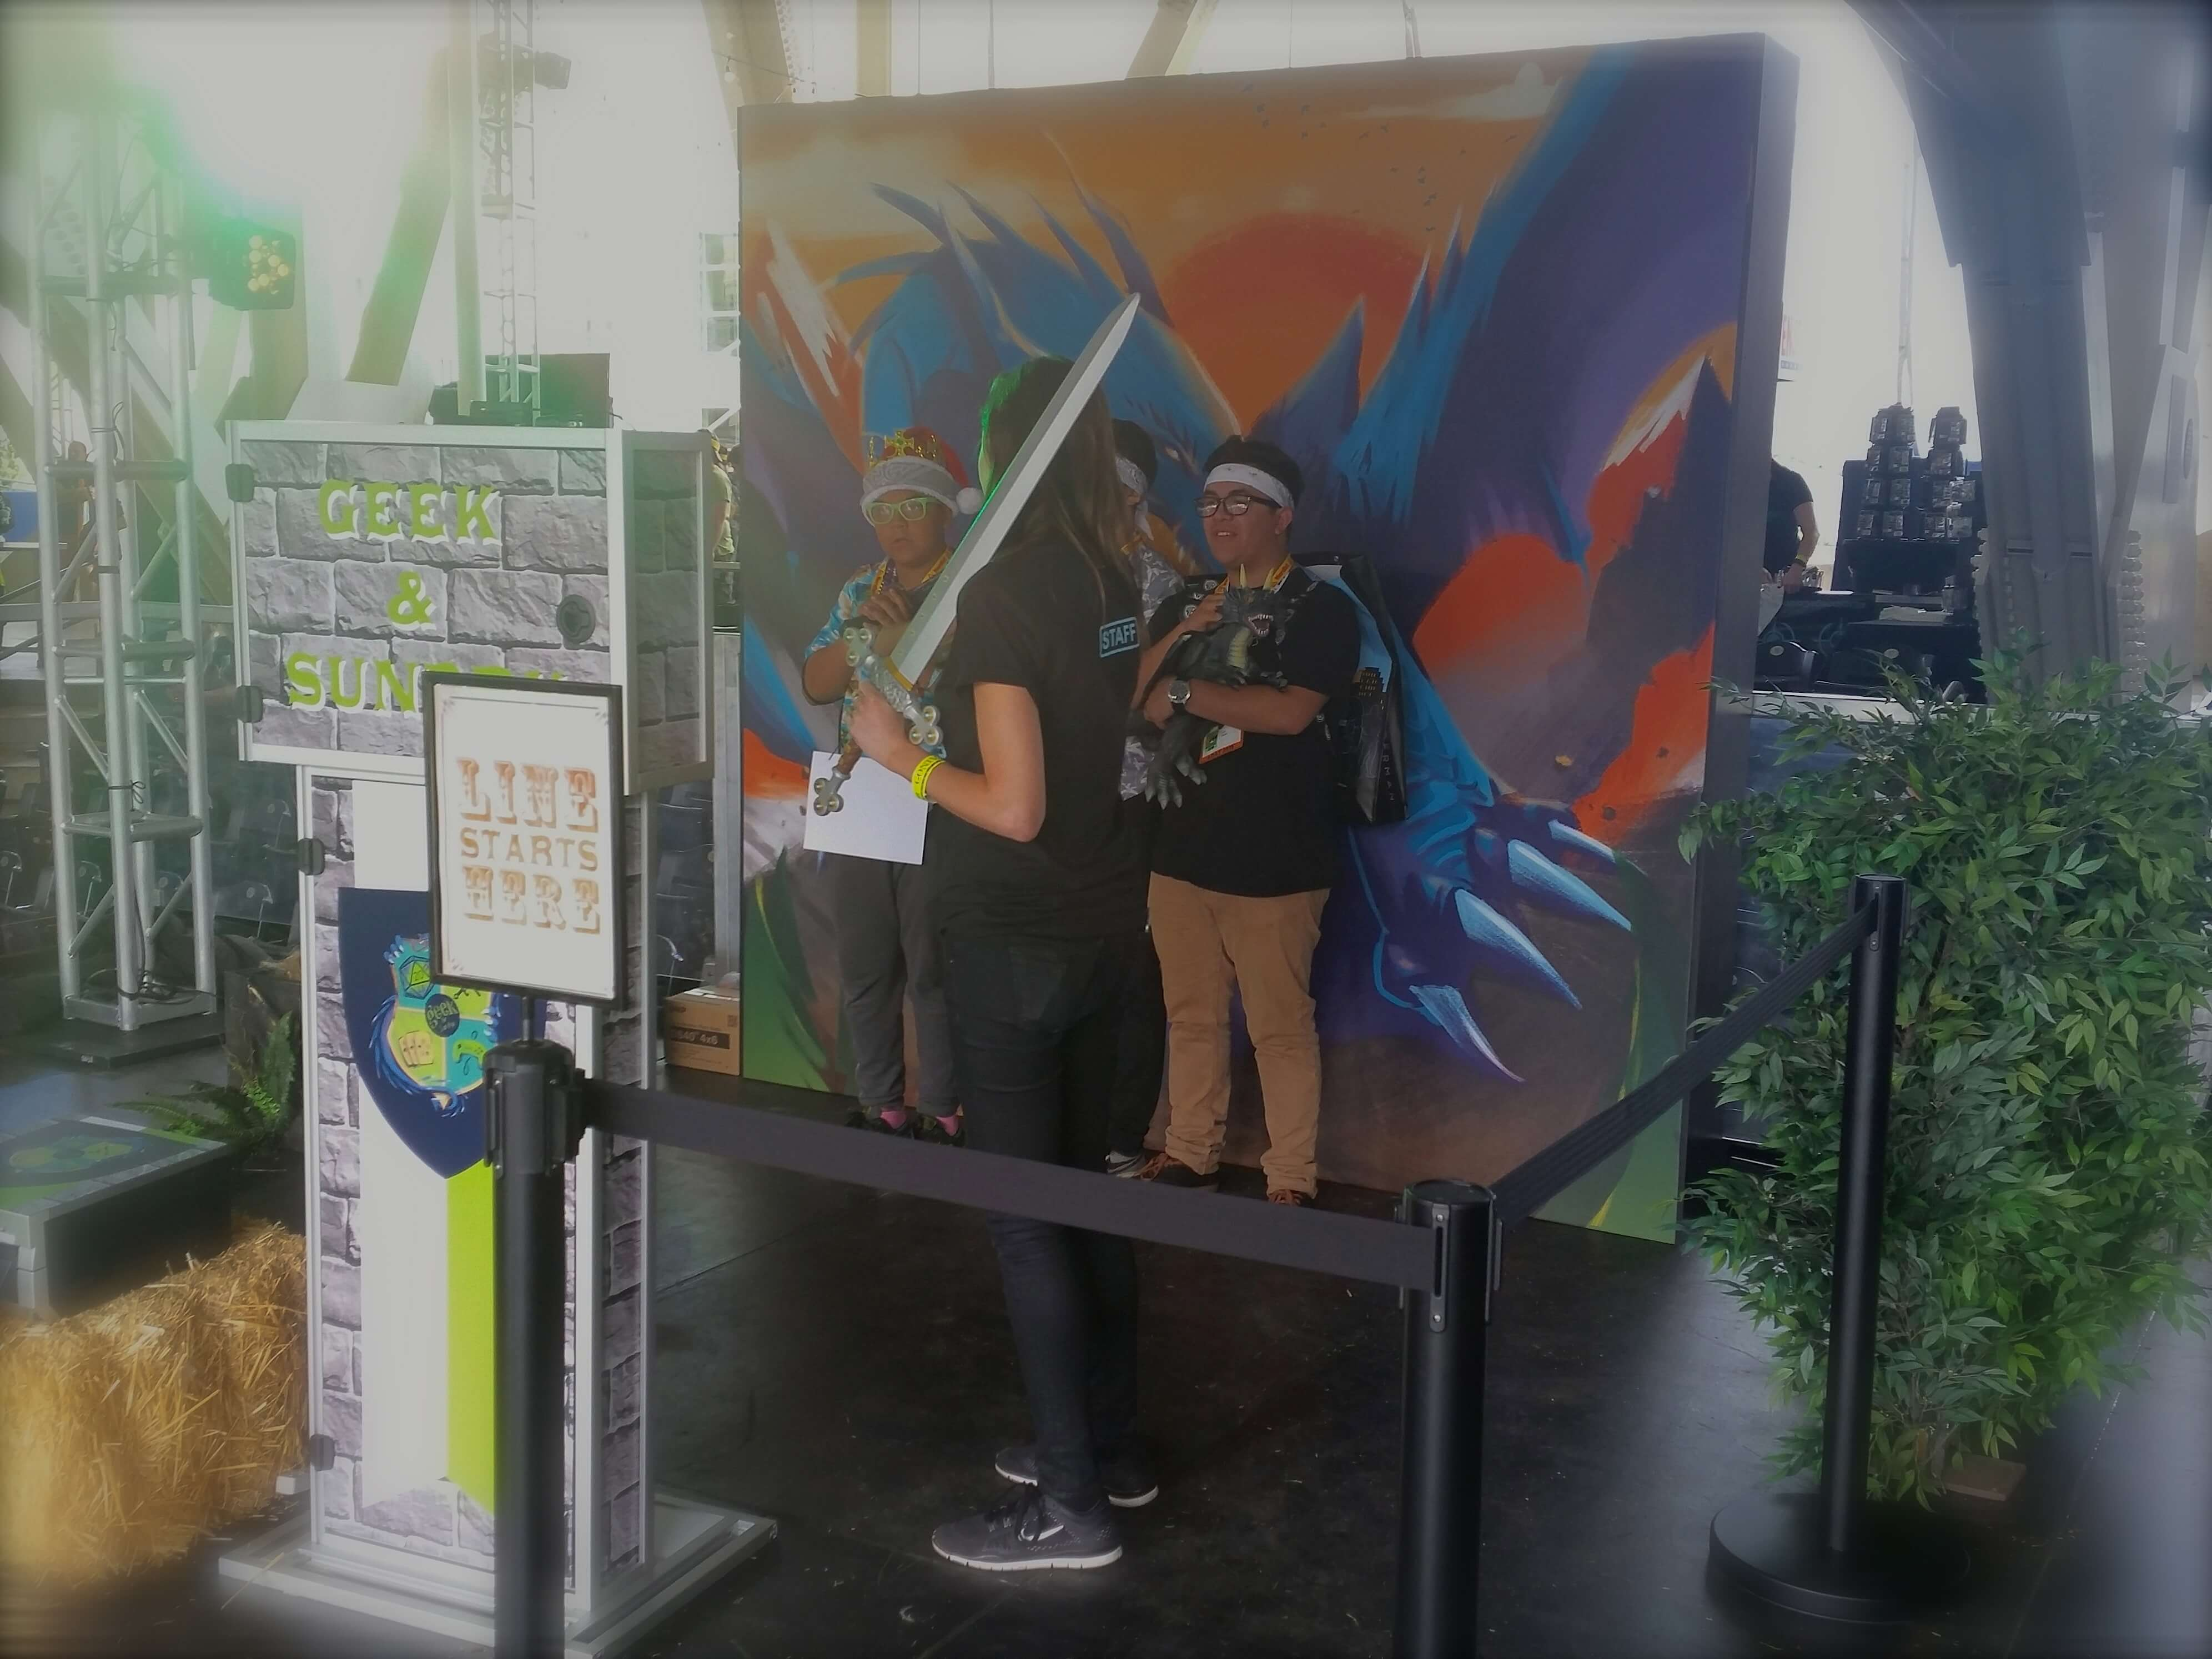 social photo kiosk conival comic con 2015